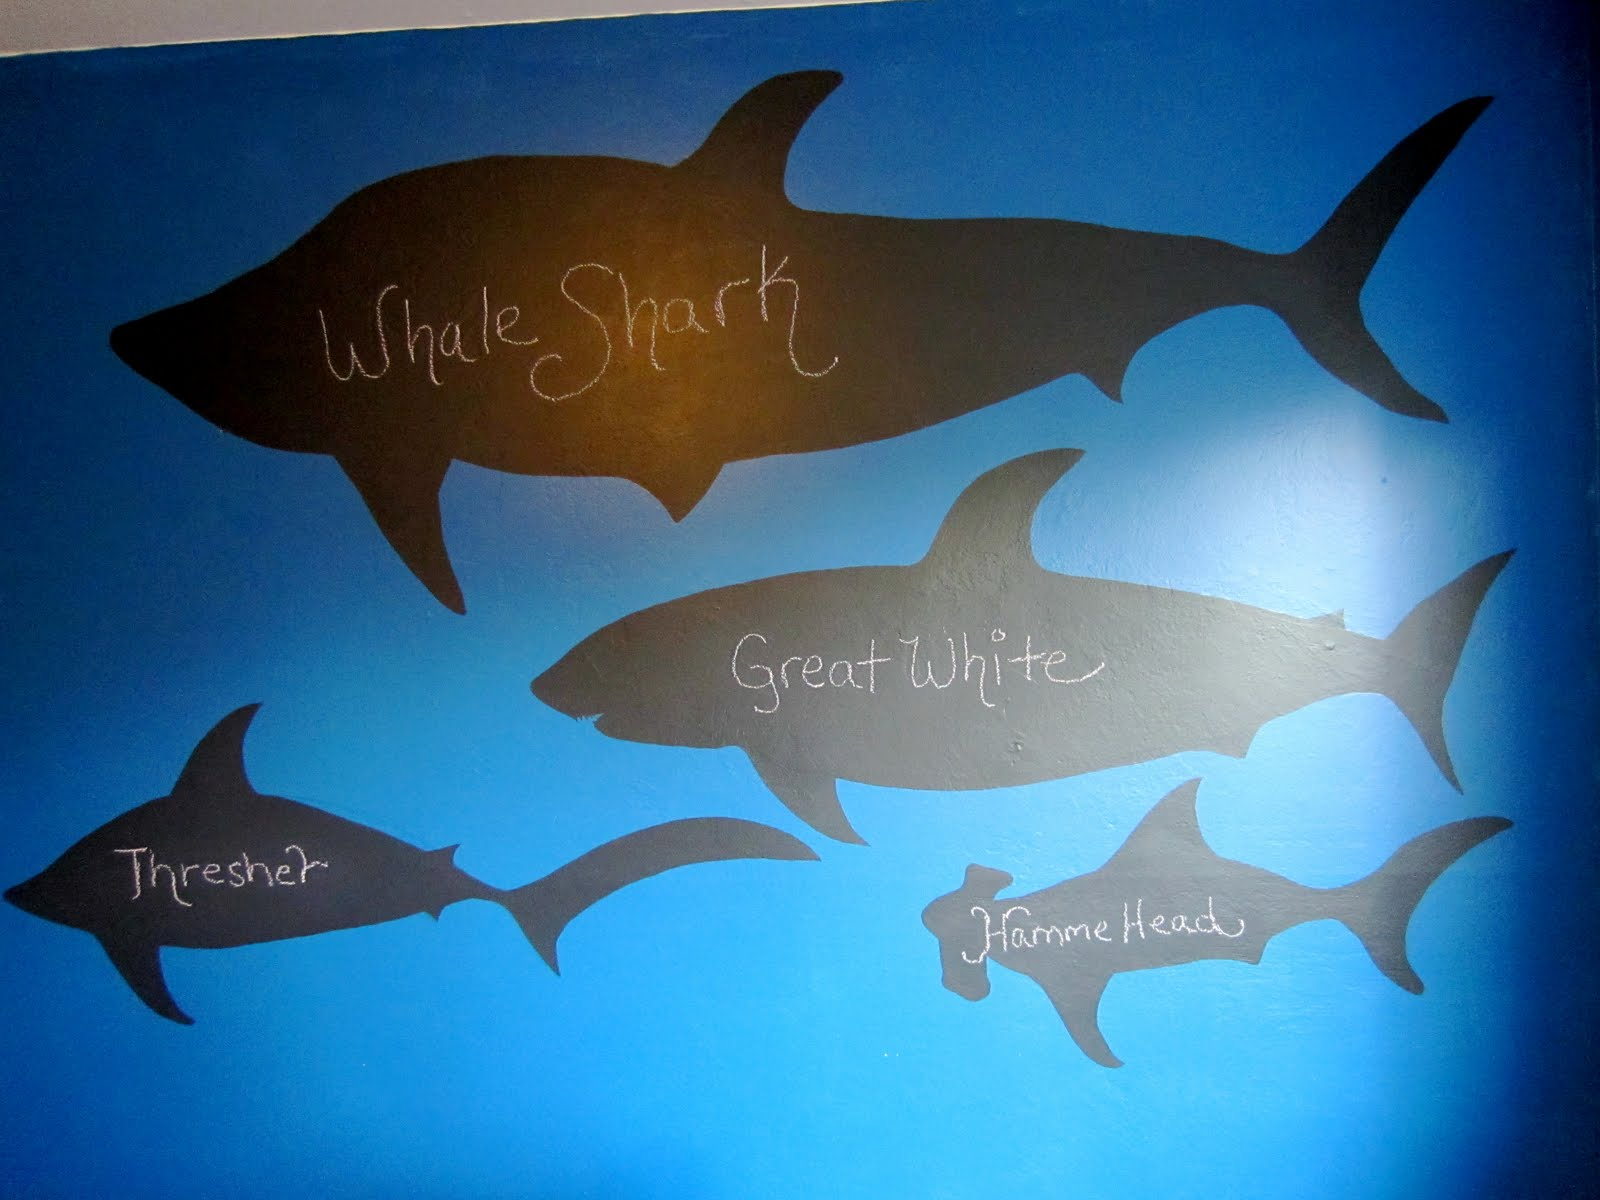 Caleb Has A Shark Themed Room So I Got The Idea To Paint Various Sharks  With Chalkboard Paint. That Way He Can Be Creative And Color In The Sharks  How He ...